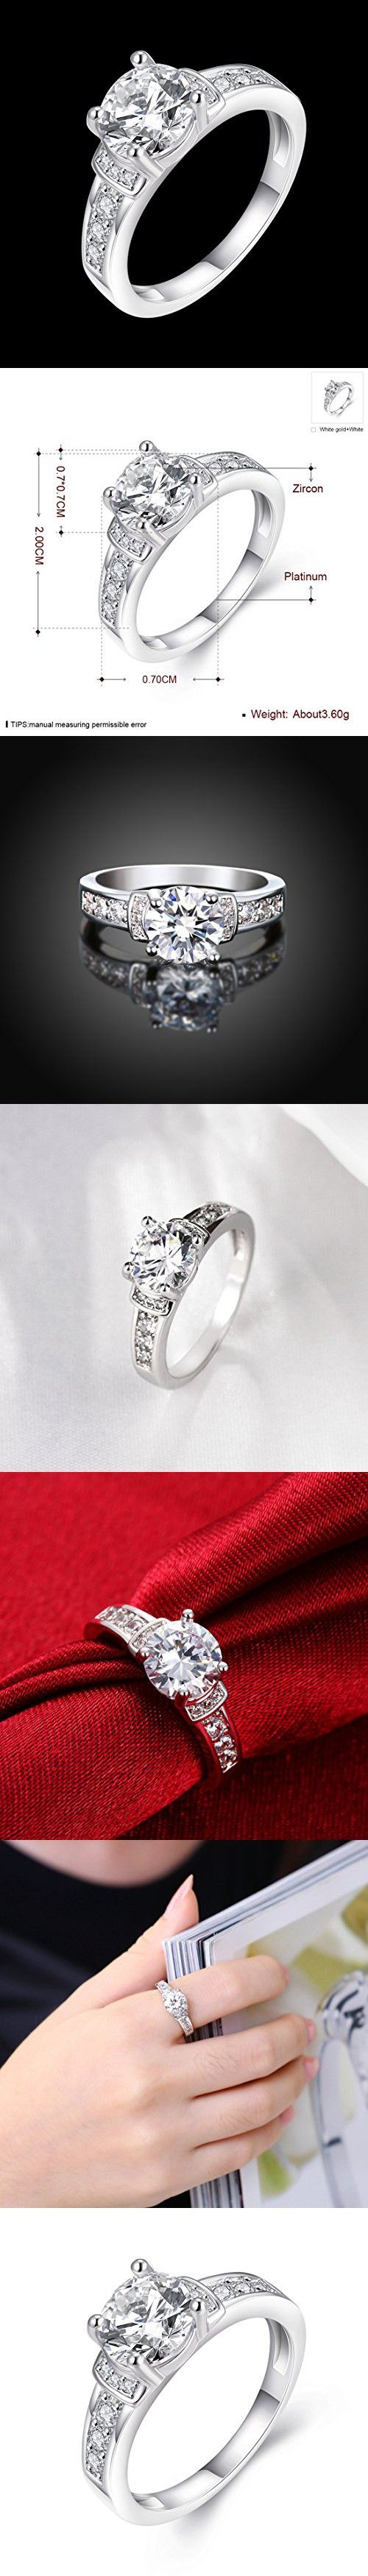 [Eternity Love] Women's Pretty 18K White Gold Plated Princess Cut CZ Crystal Engagement Rings Best Promise Rings for Her Anniversary Arrow Wedding Bands TIVANI Collection Jewelry Rings